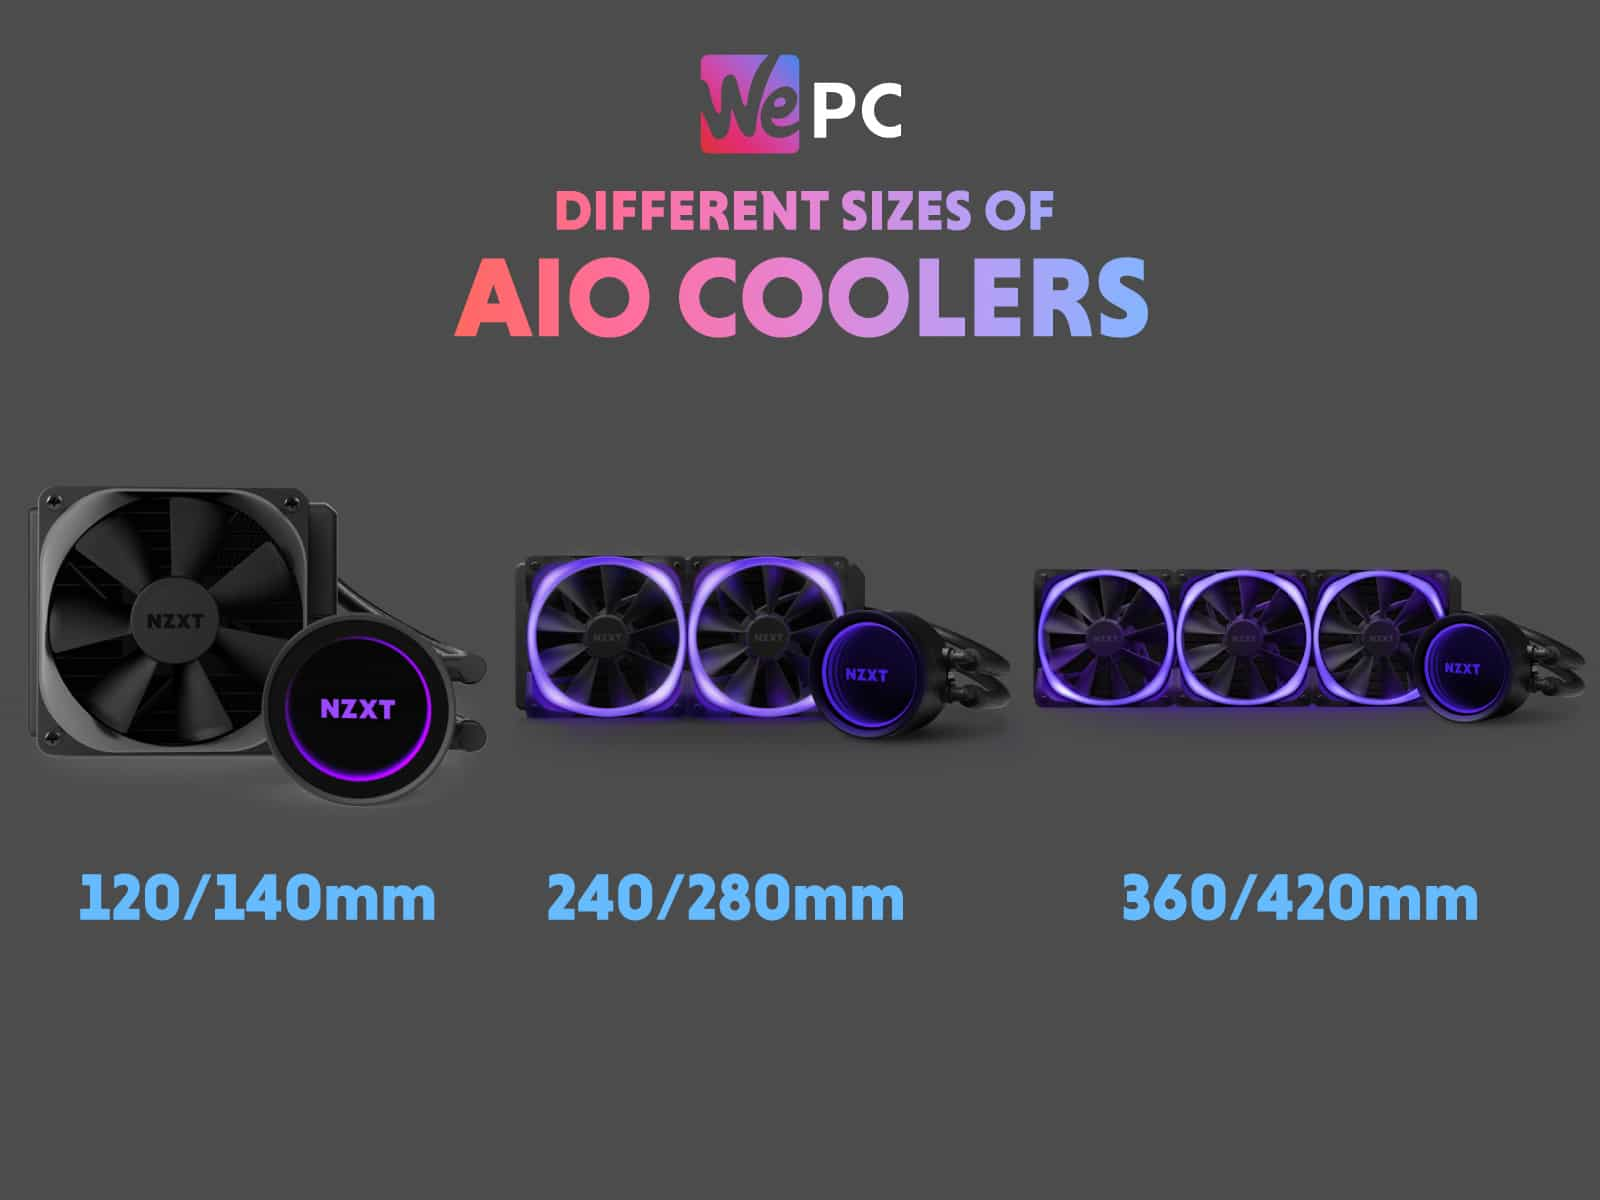 Different sizes of AIO coolers